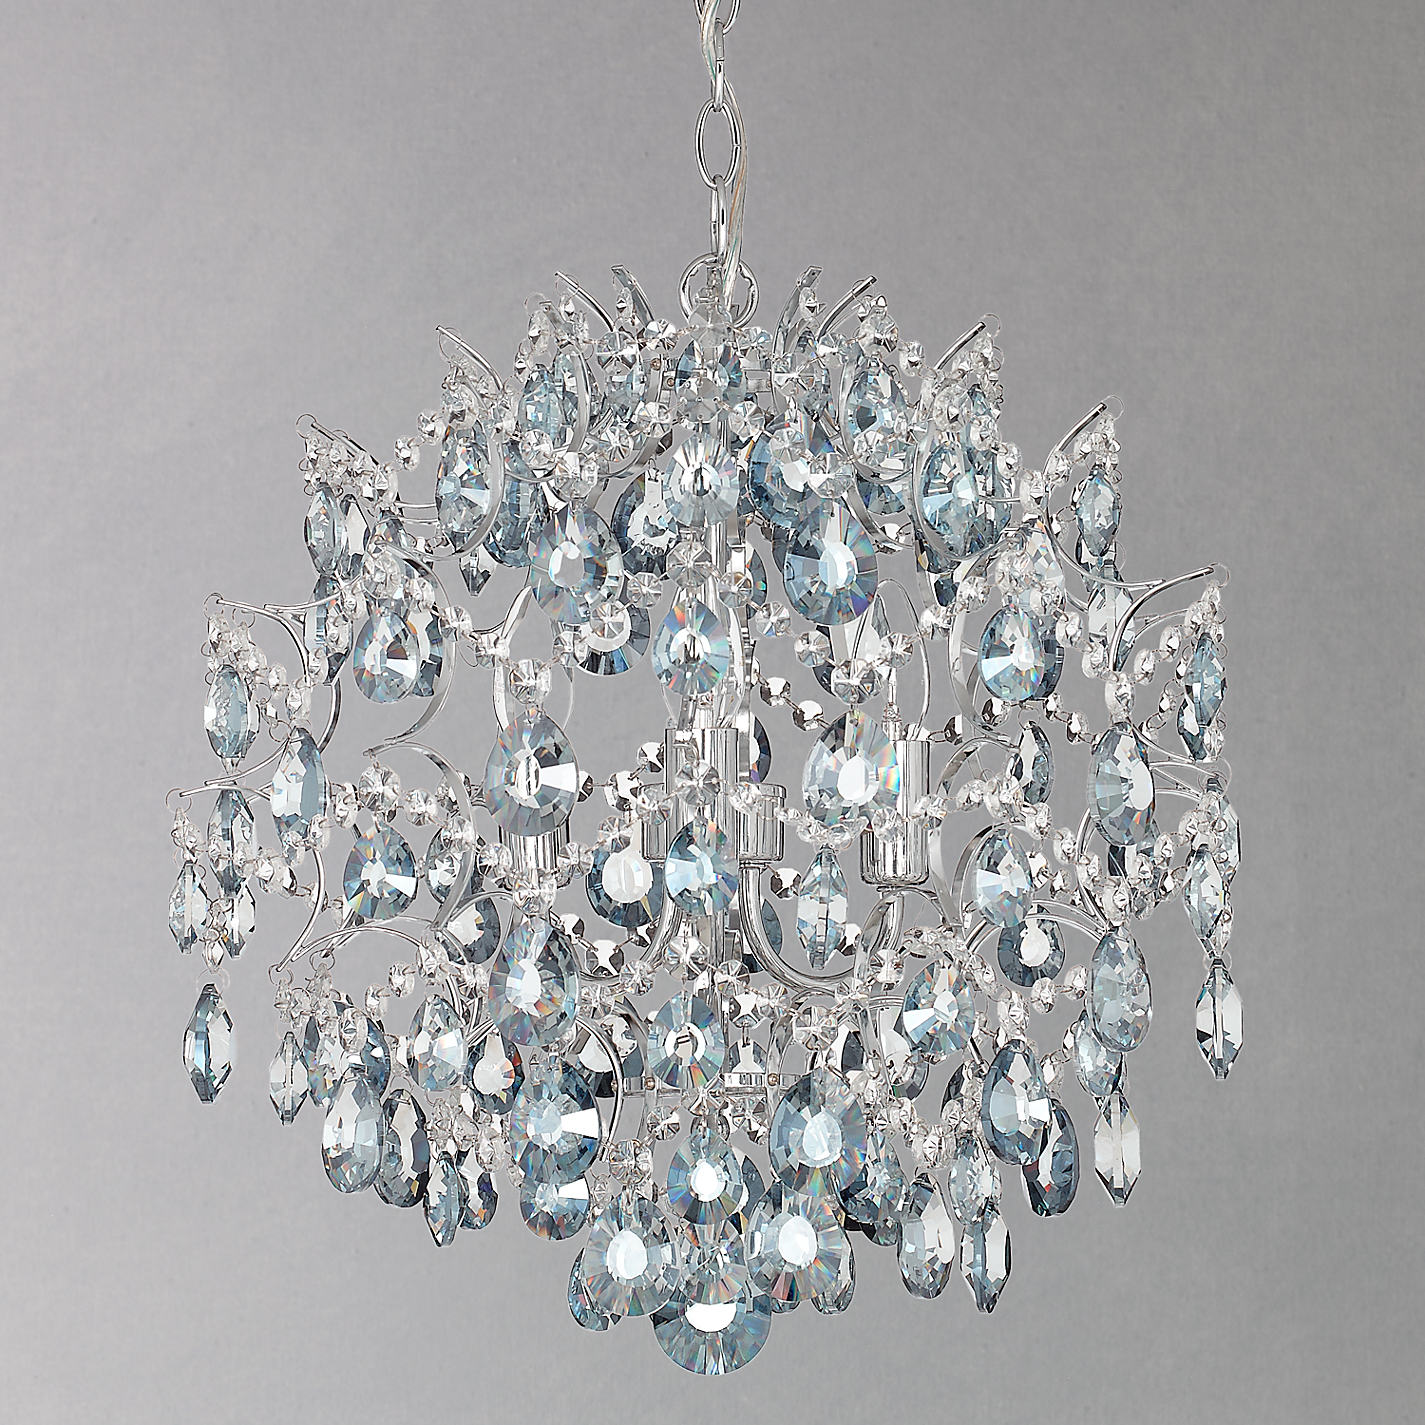 Buy john lewis baroque crystal chandelier john lewis buy john lewis baroque crystal chandelier online at johnlewis mozeypictures Gallery